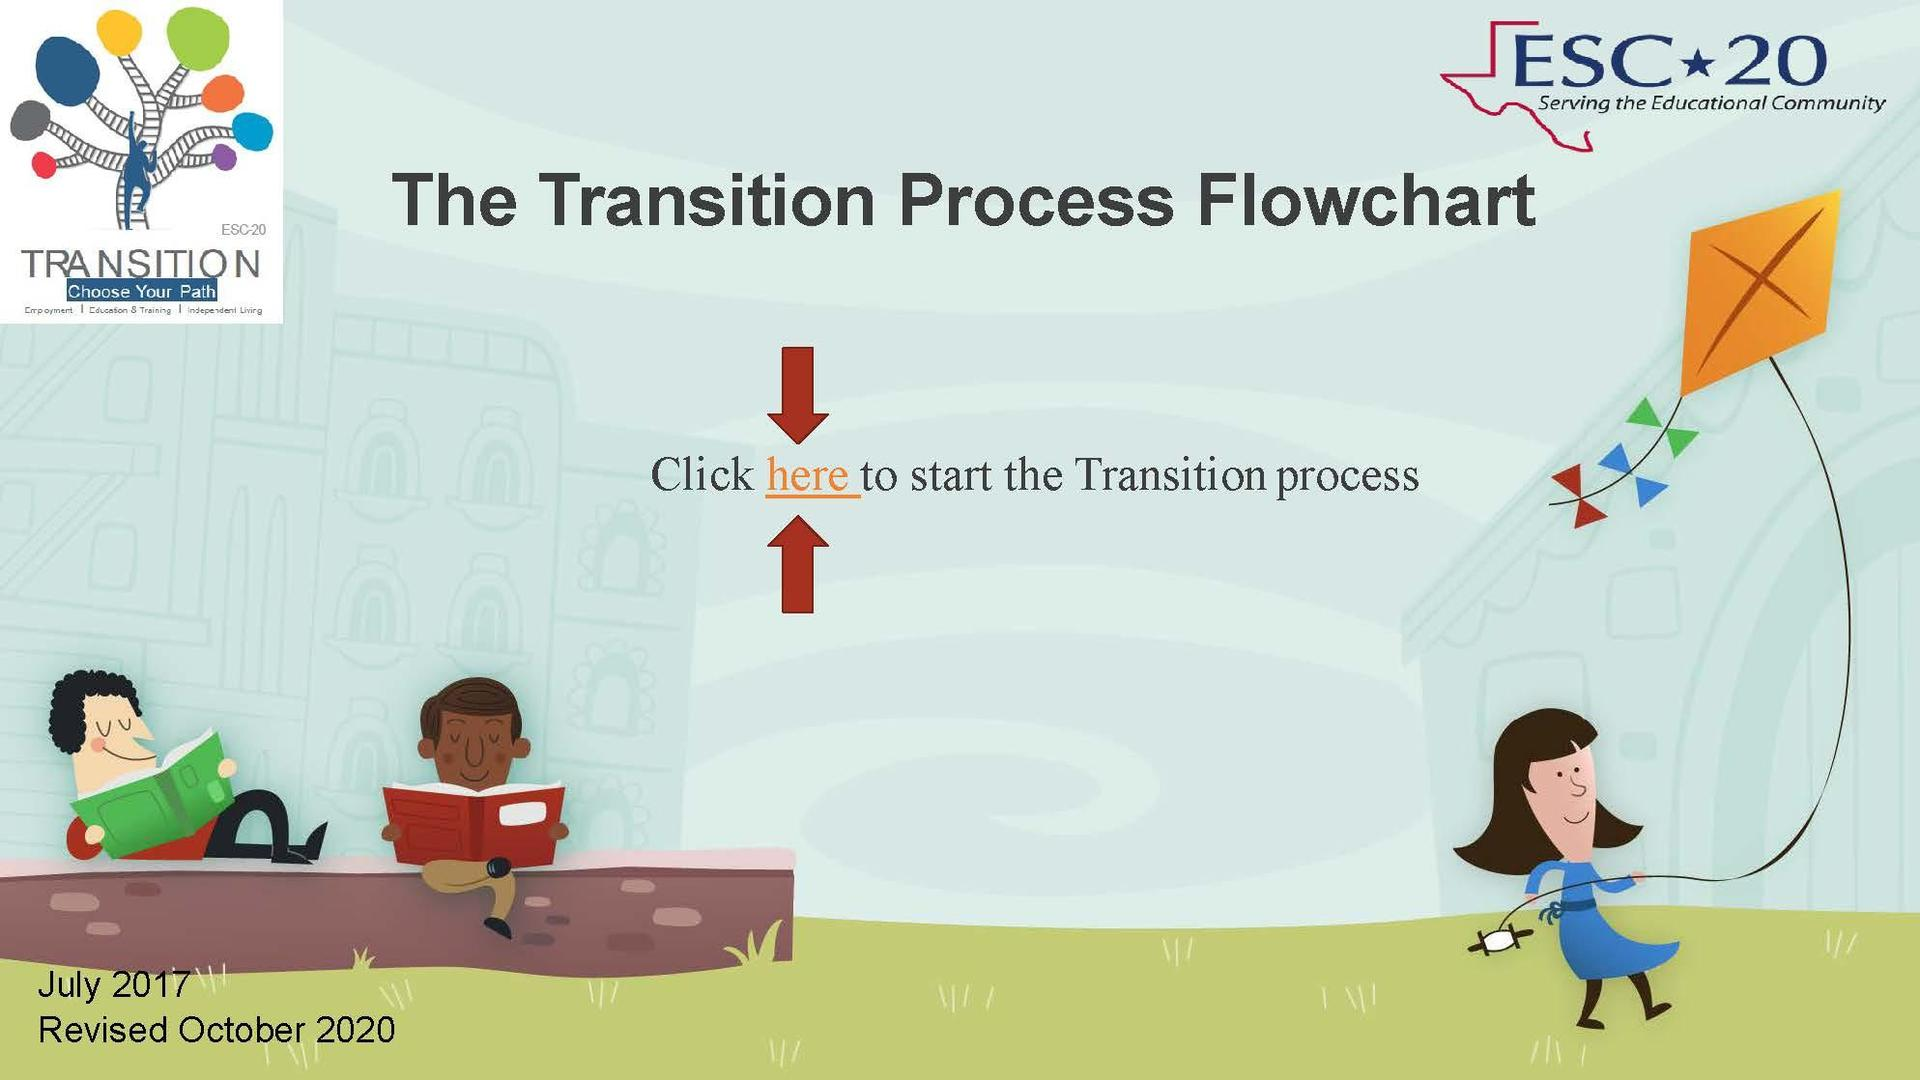 The Transition Process Flowchart